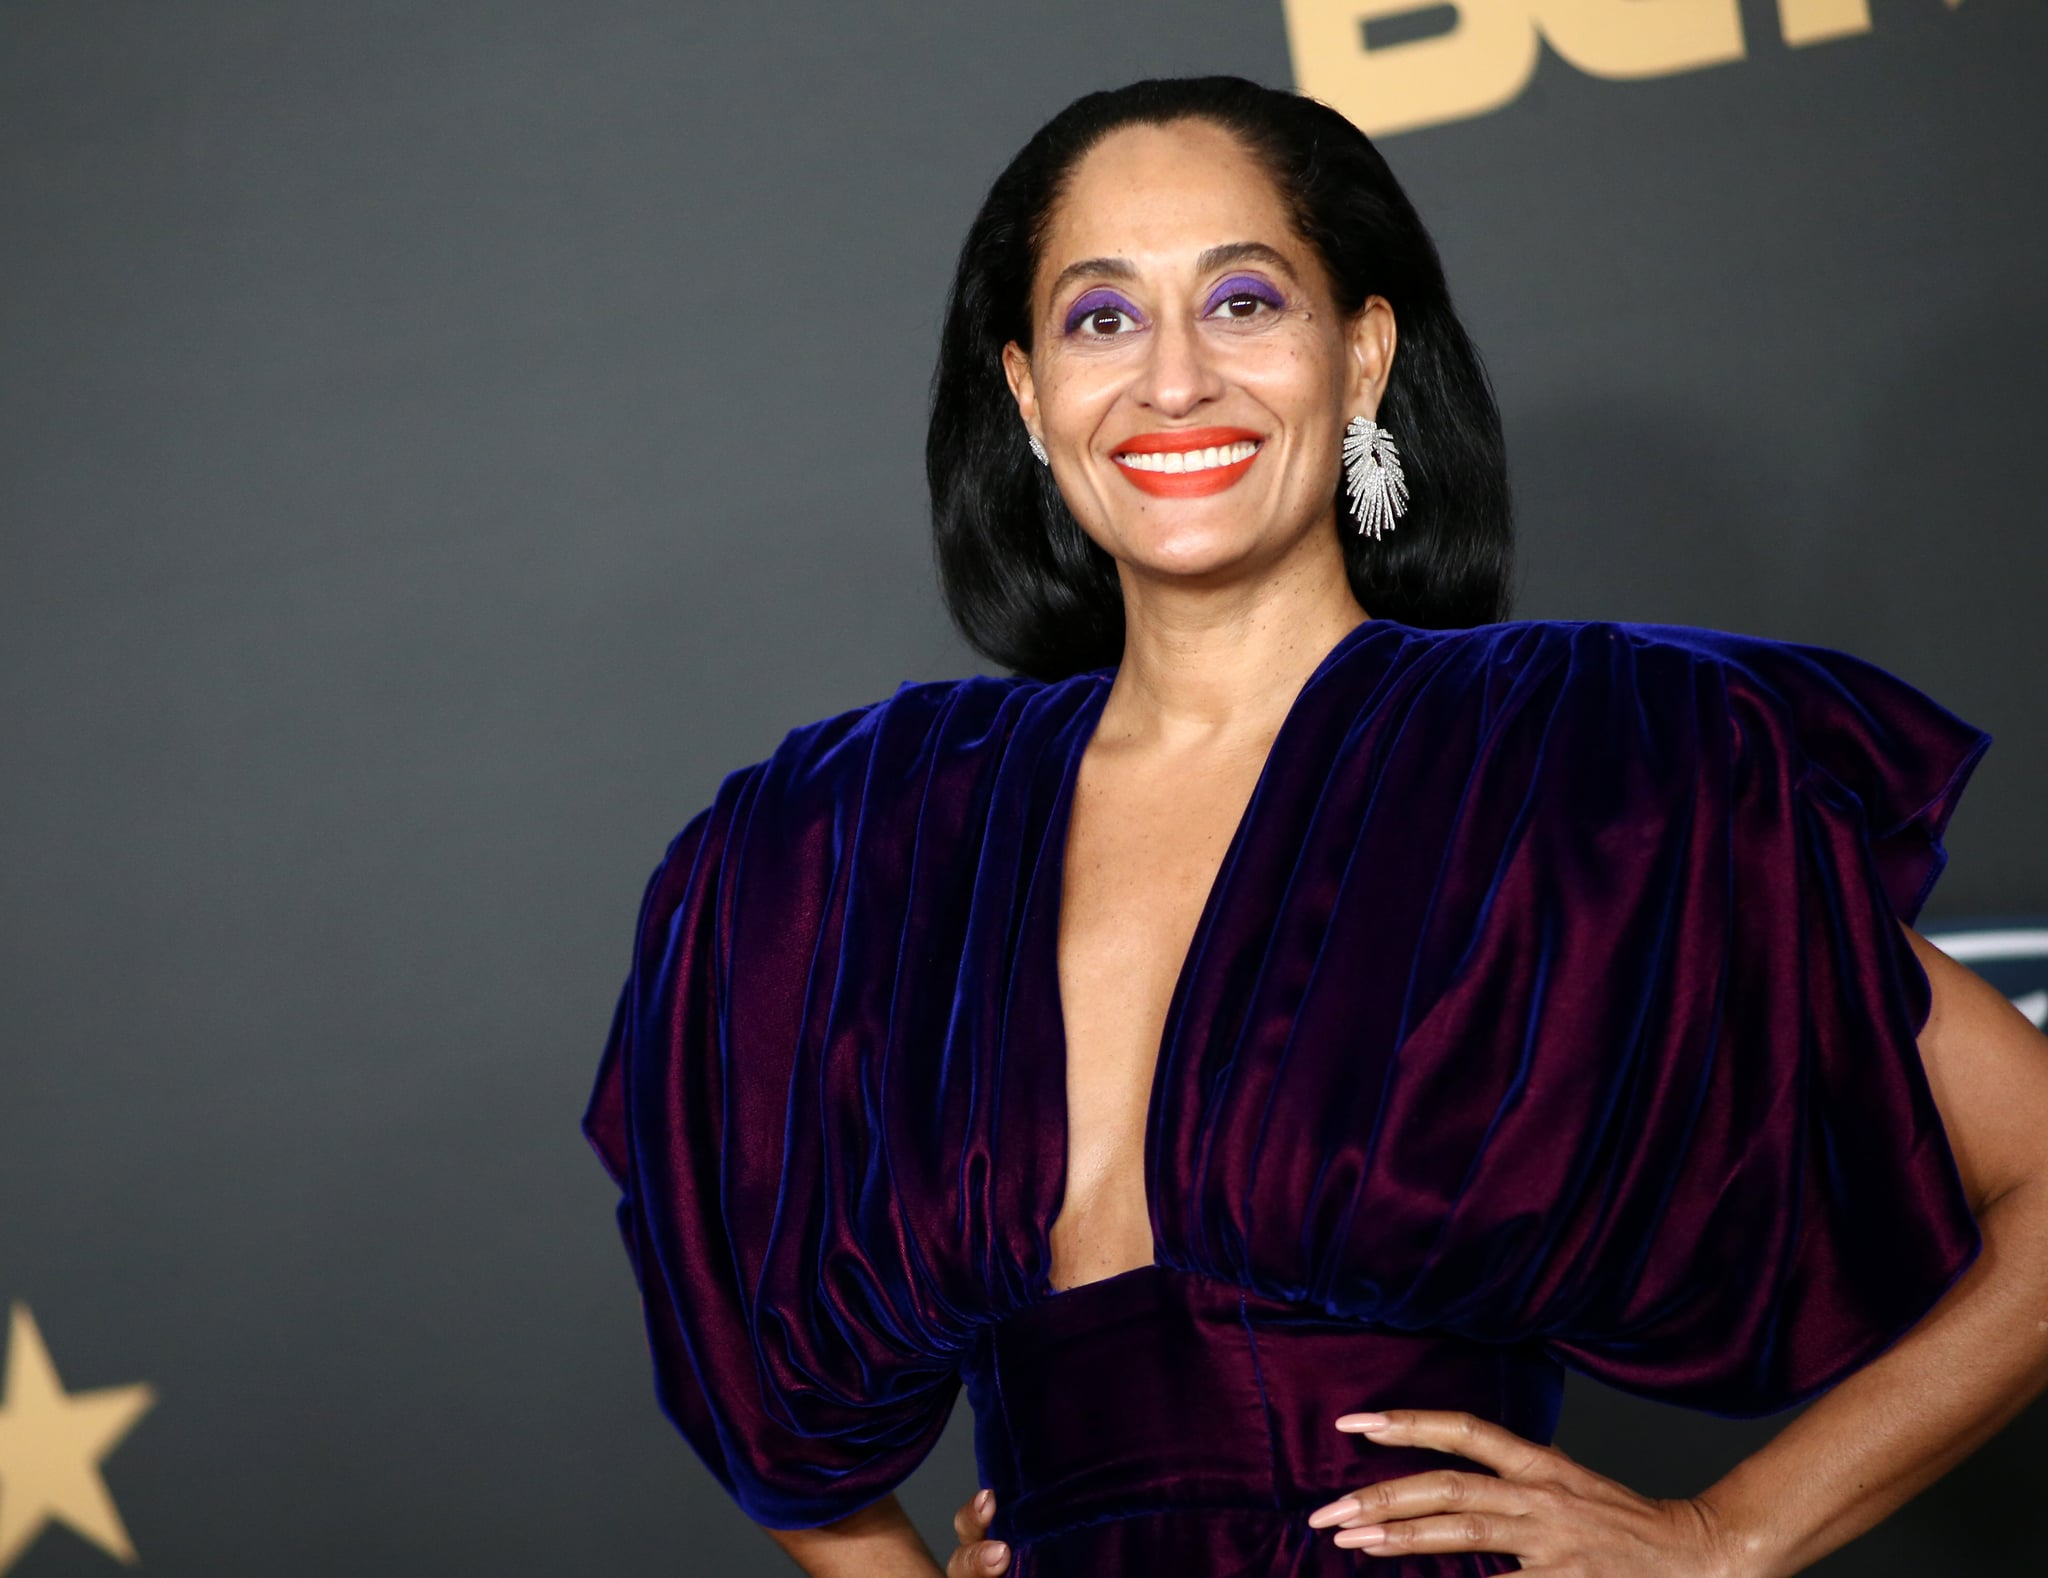 PASADENA, CALIFORNIA - FEBRUARY 22: Tracee Ellis Ross attends the 51st NAACP Image Awards, Presented by BET, at Pasadena Civic Auditorium on February 22, 2020 in Pasadena, California. (Photo by Tommaso Boddi/FilmMagic)